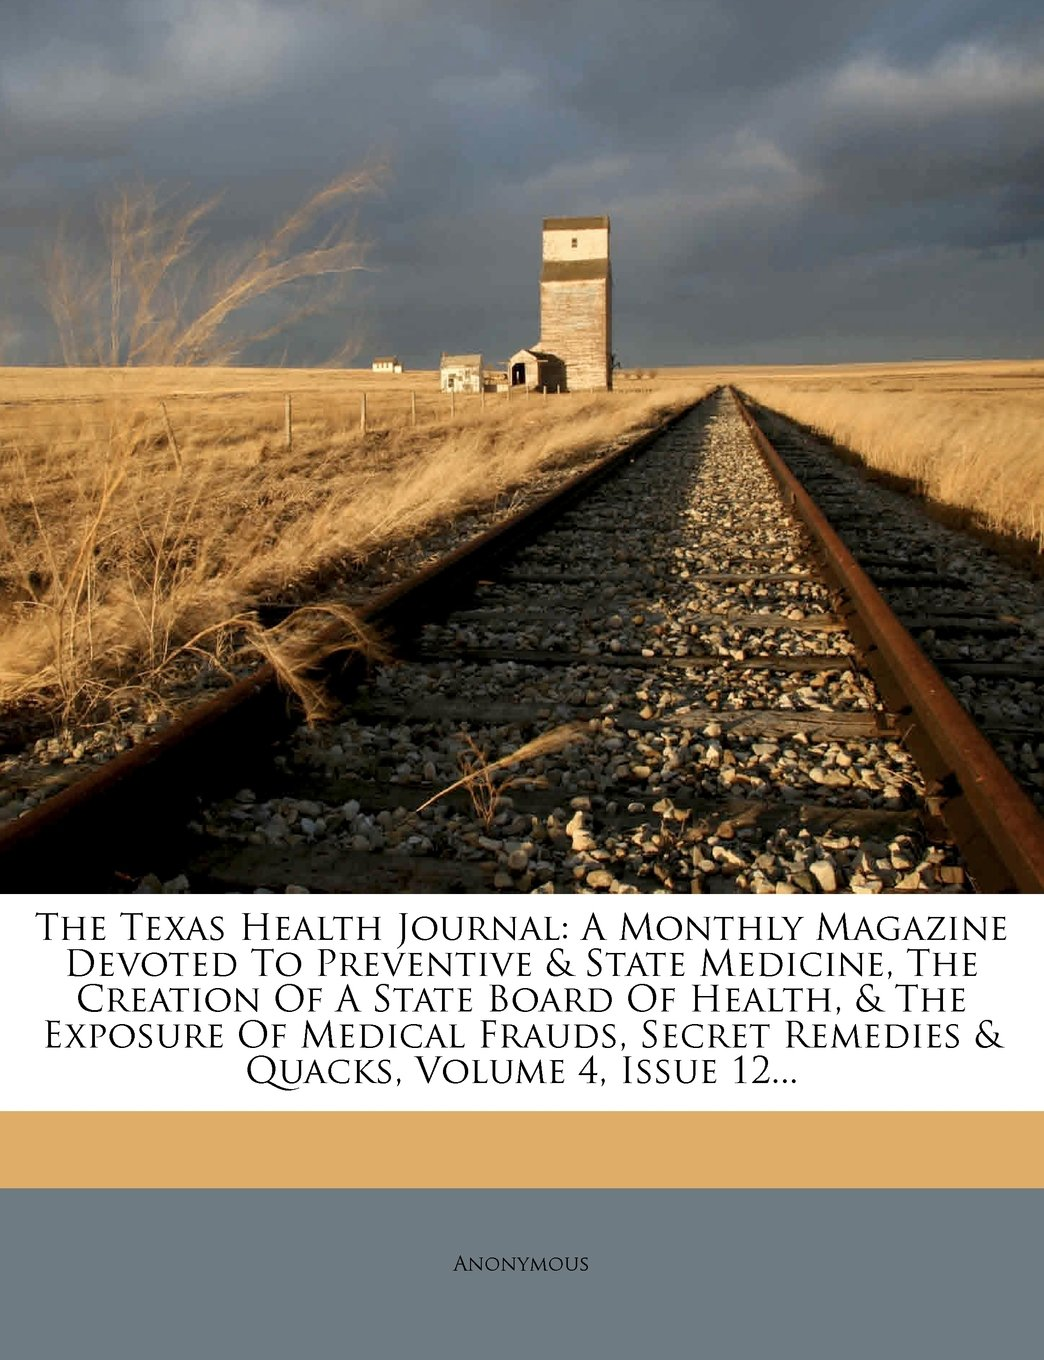 Download The Texas Health Journal: A Monthly Magazine Devoted To Preventive & State Medicine, The Creation Of A State Board Of Health, & The Exposure Of ... Remedies & Quacks, Volume 4, Issue 12... ebook